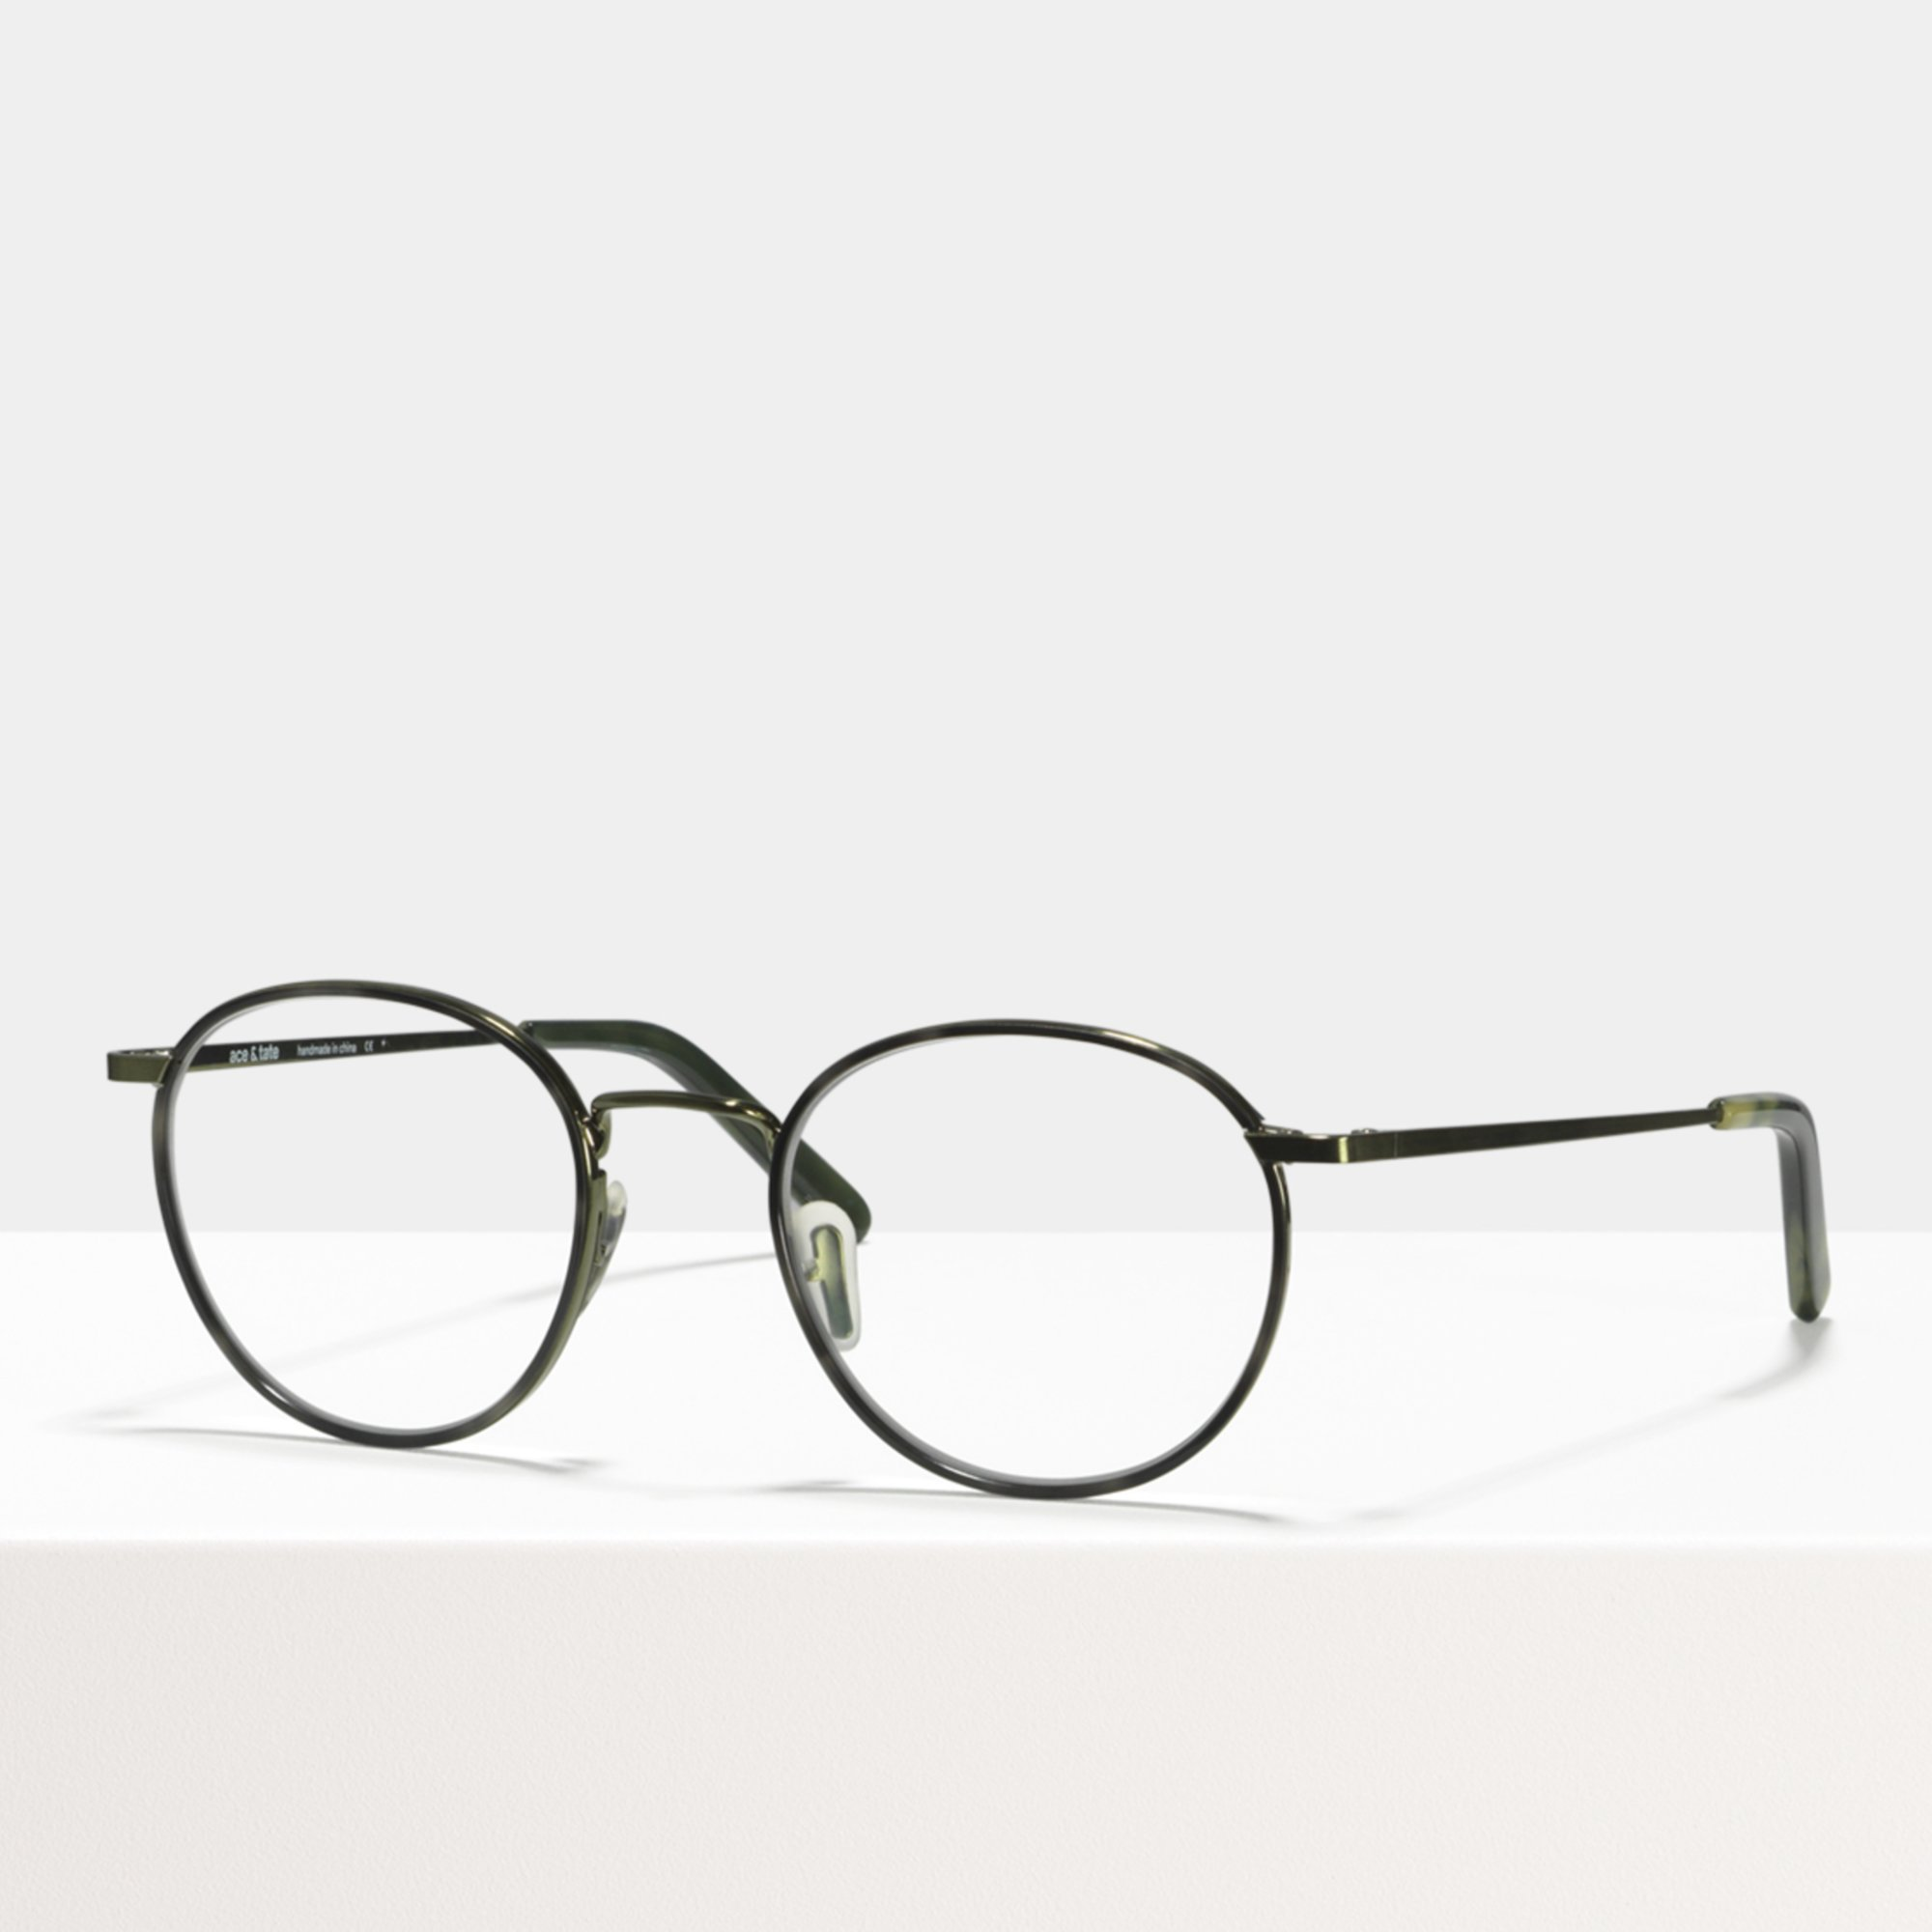 Ace & Tate Glasses | round metal in Green